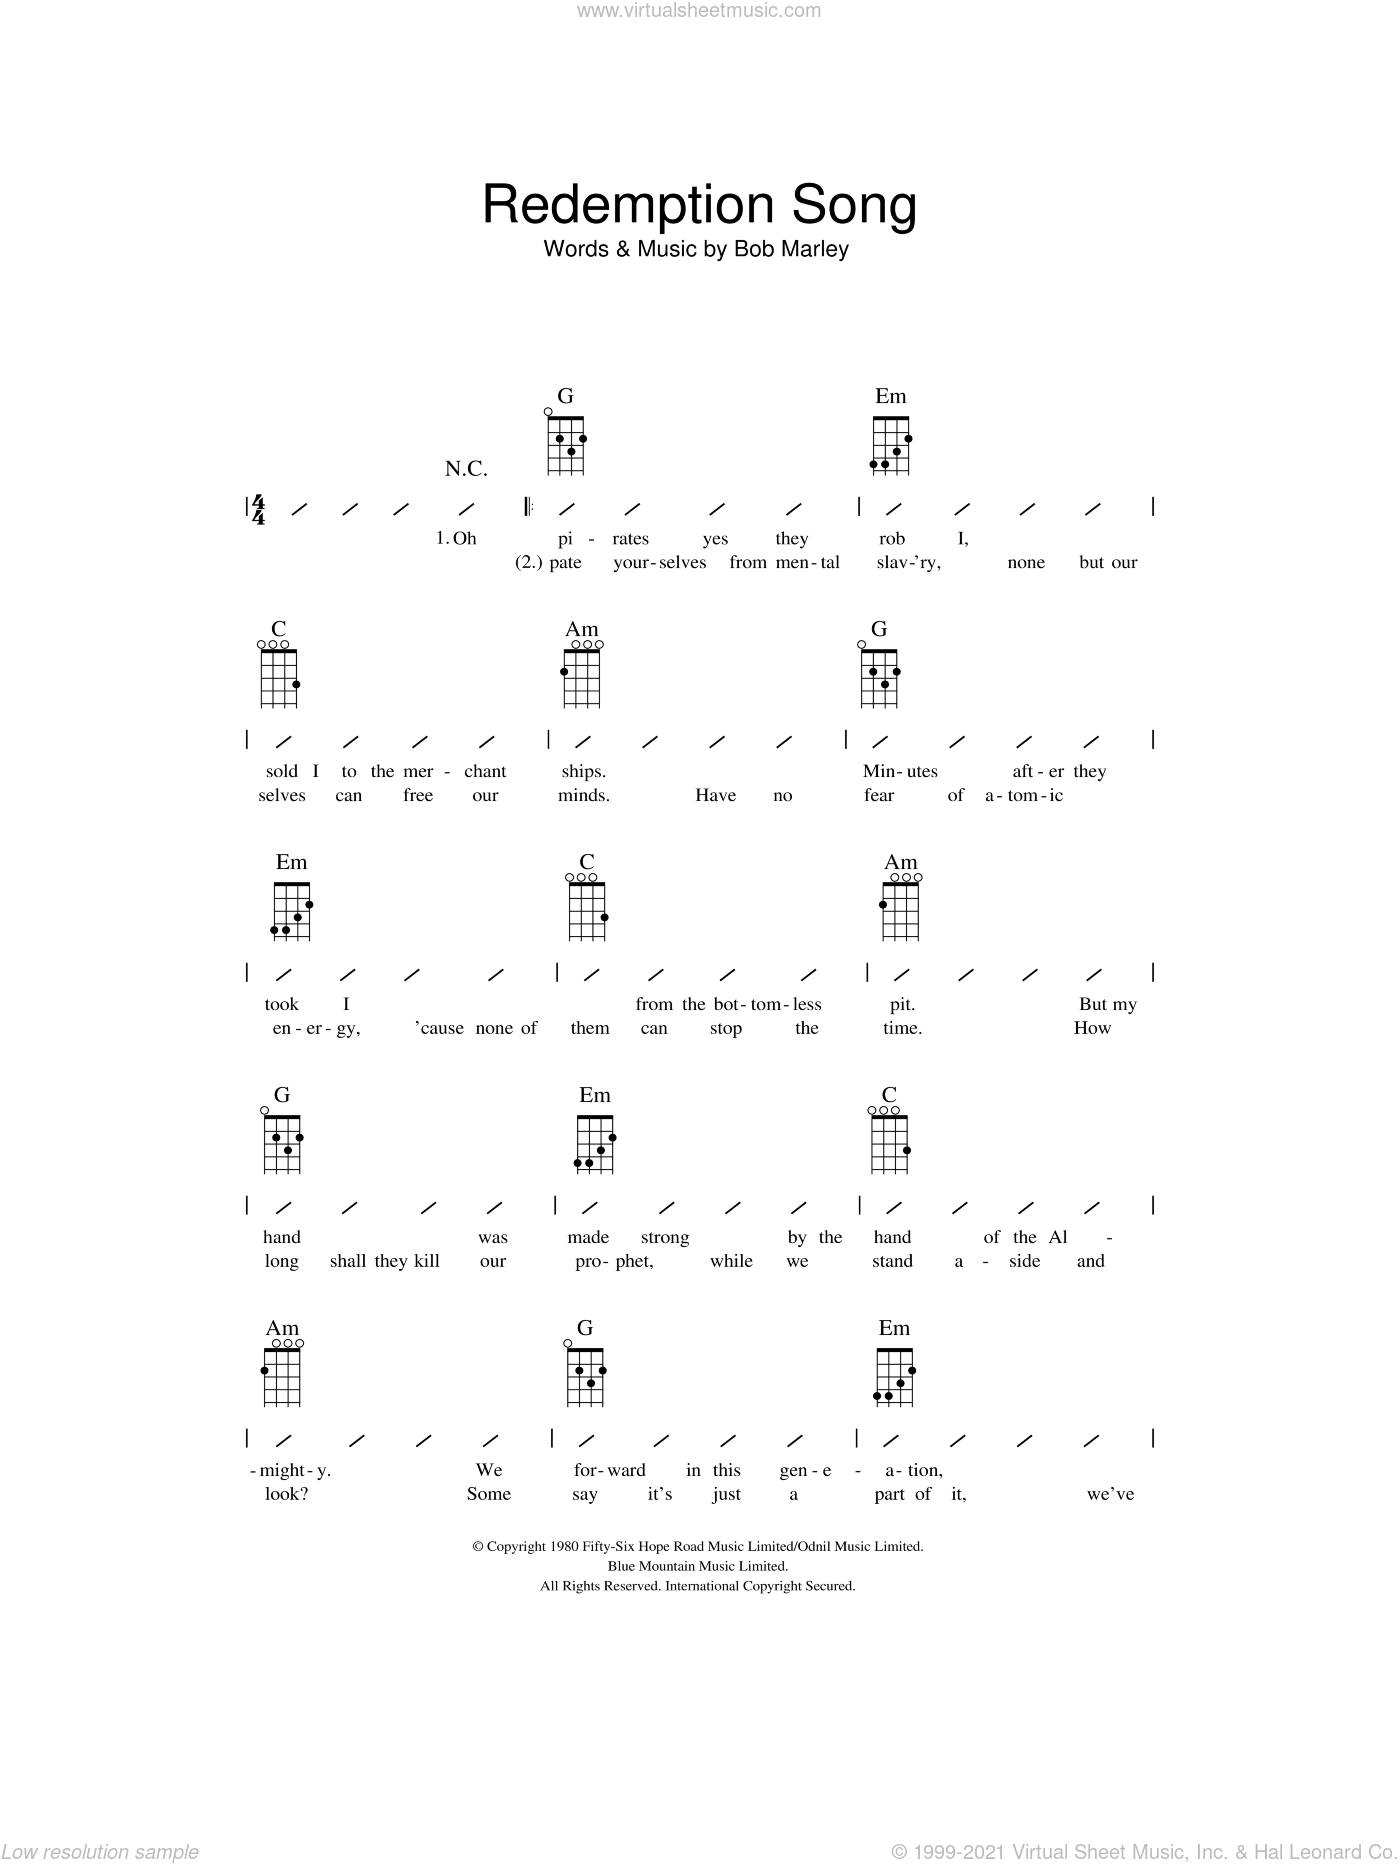 Redemption Song sheet music for ukulele (chords) by Bob Marley, intermediate skill level